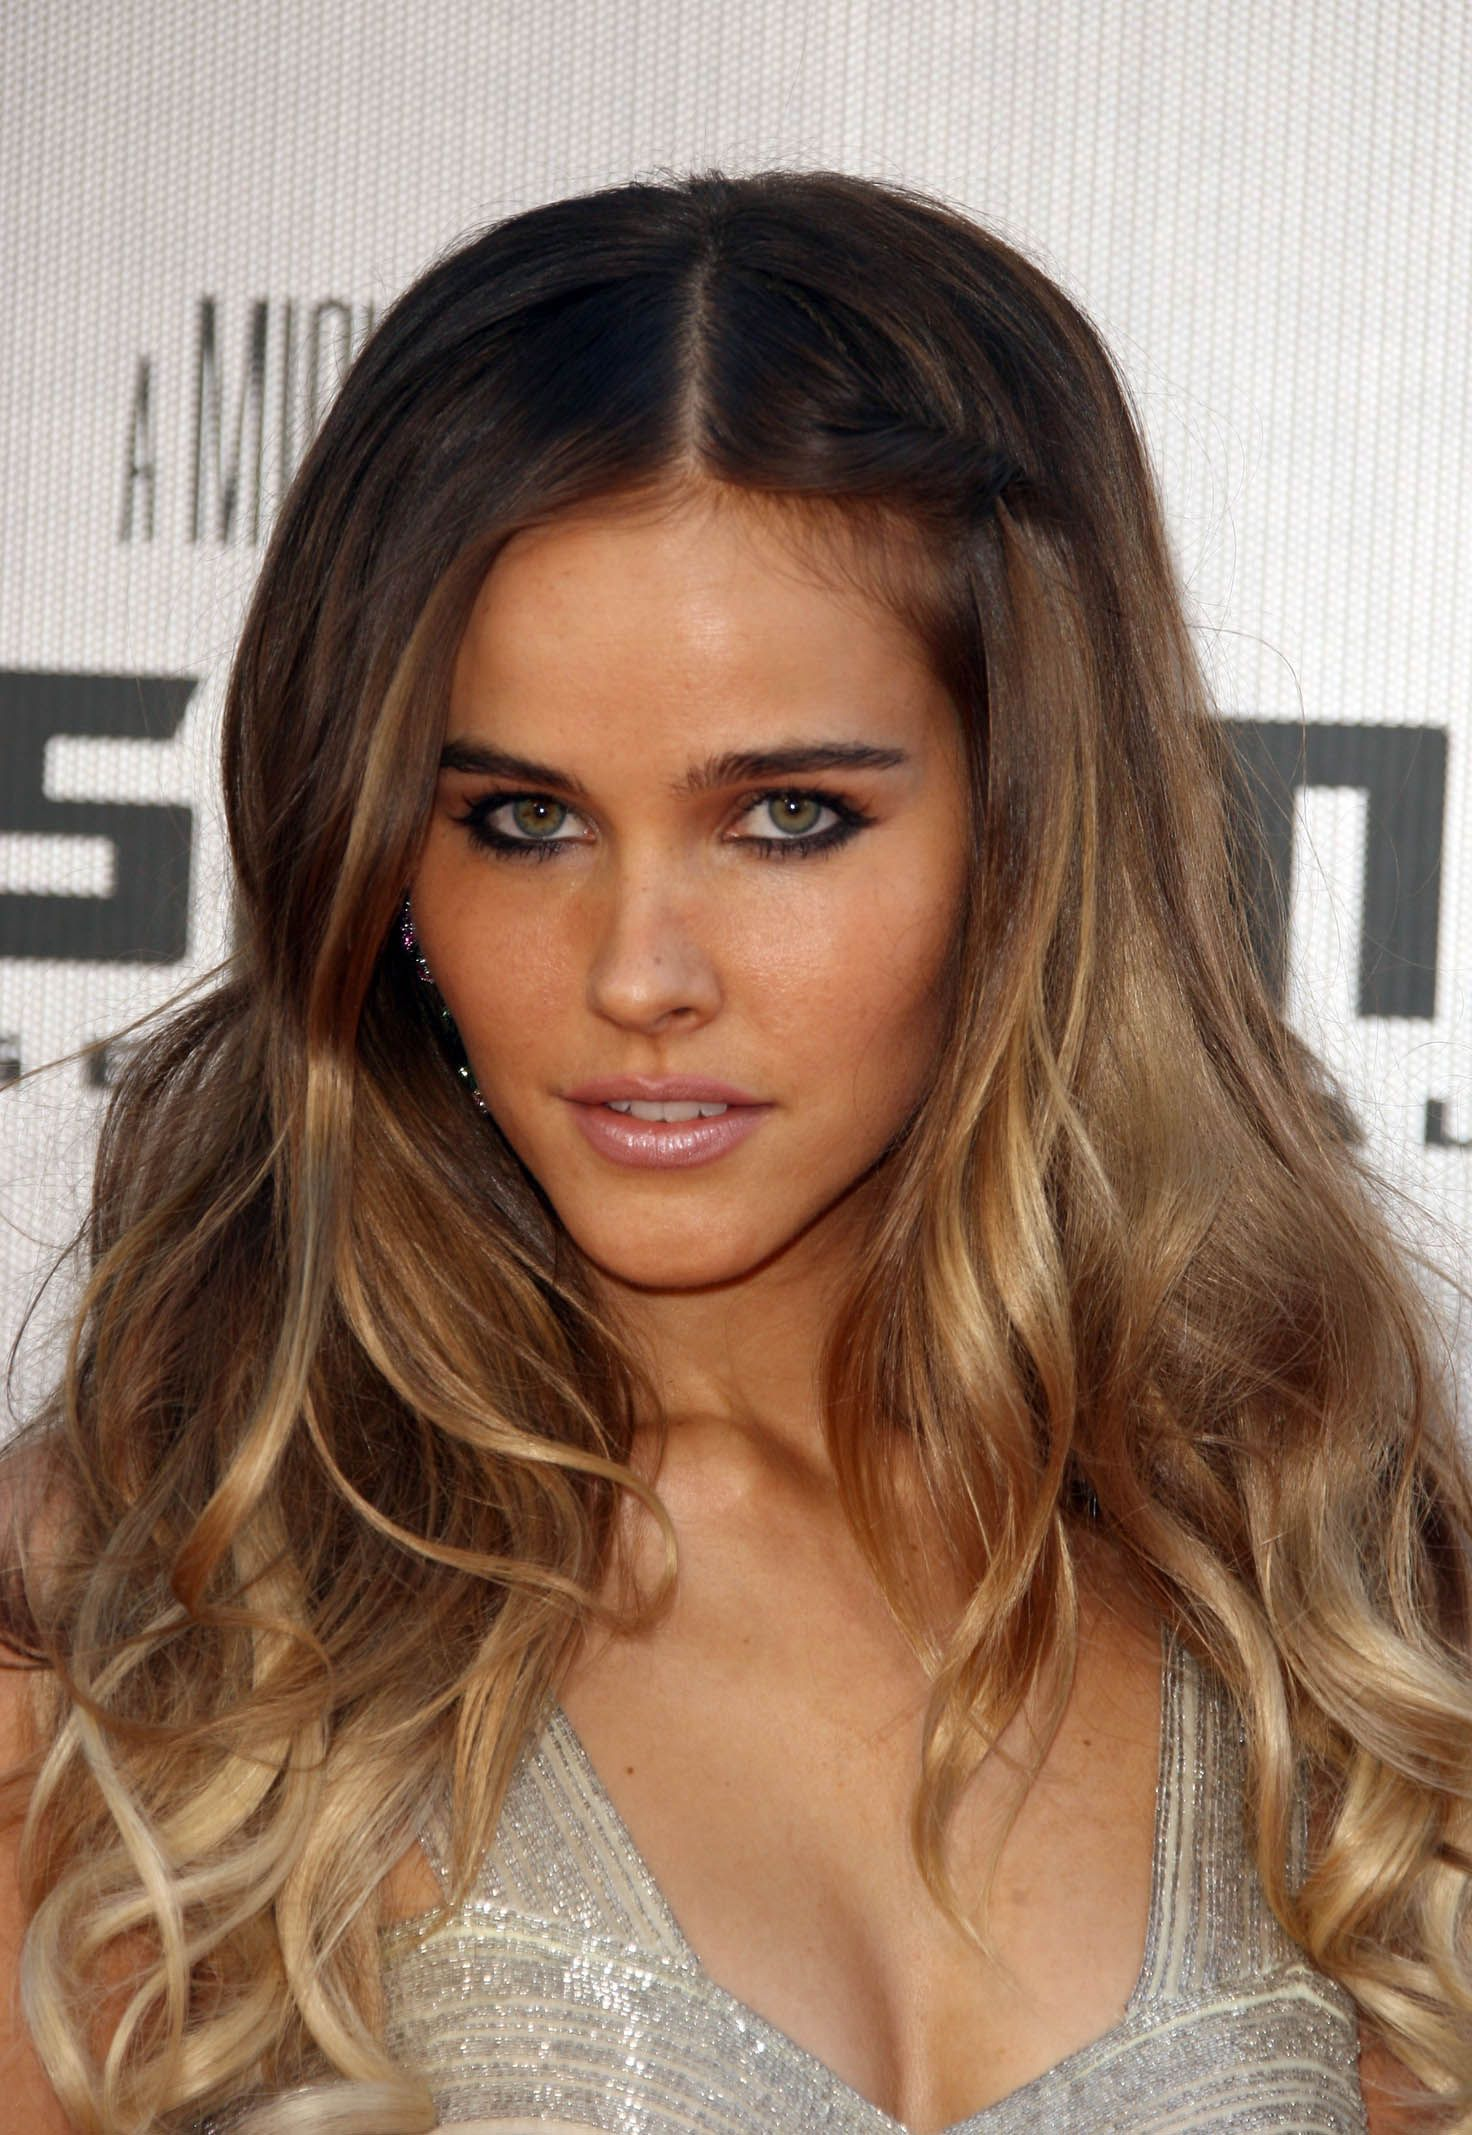 isabel lucas - photo #3